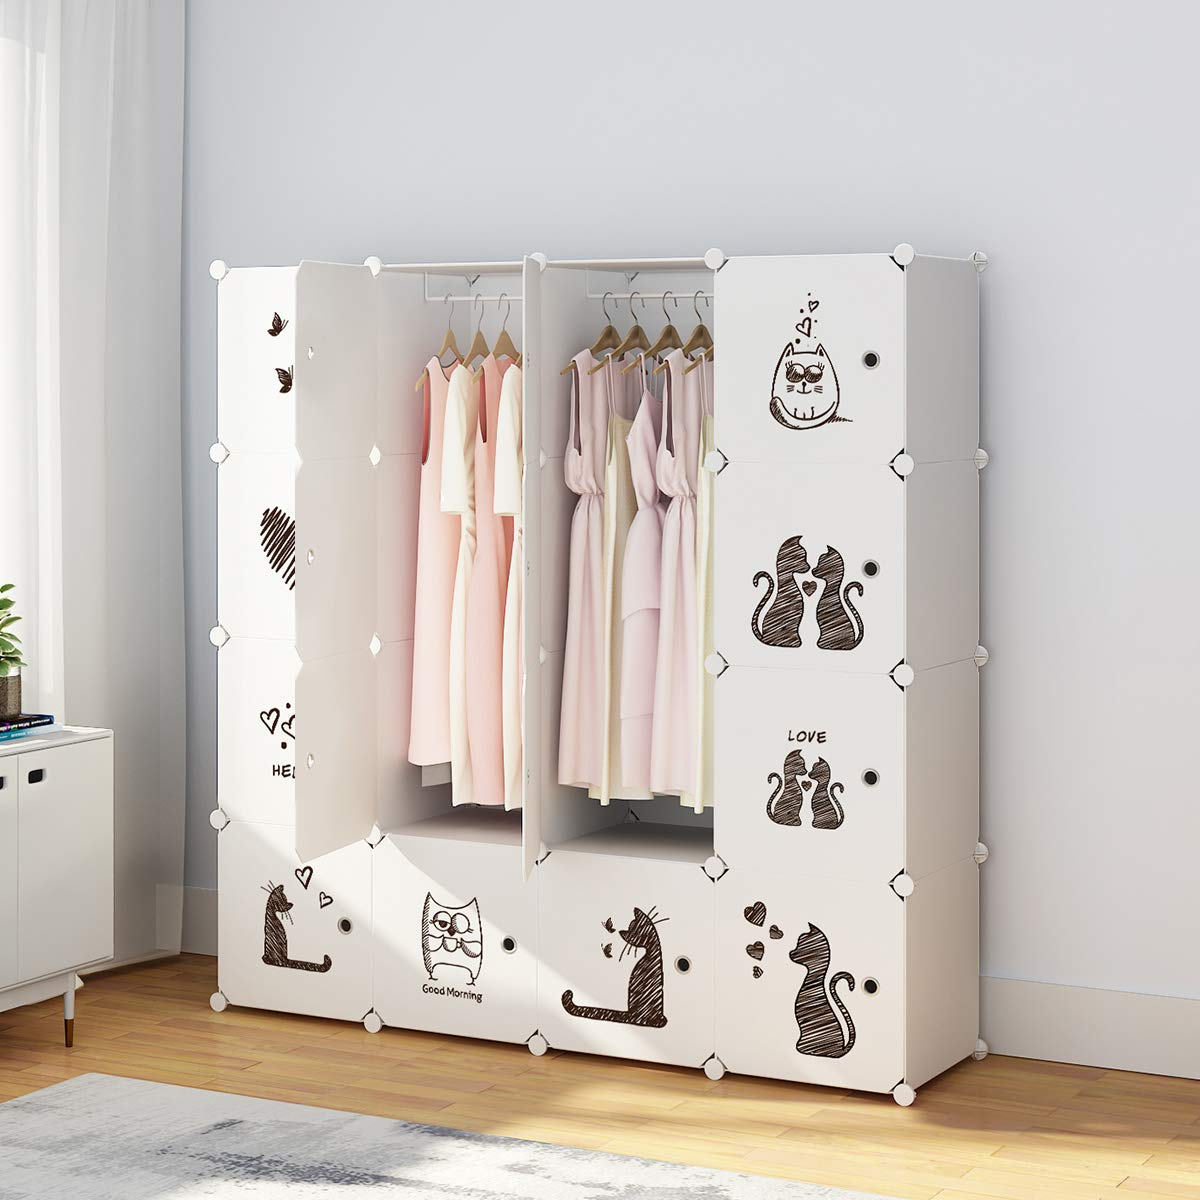 KOUSI Portable Clothes Closet Wardrobe Bedroom Armoire Dresser Cube Storage Organizer, Capacious & Custom-RB-CAT (10 Cubes 2 Hanging Clothes) by KOUSI